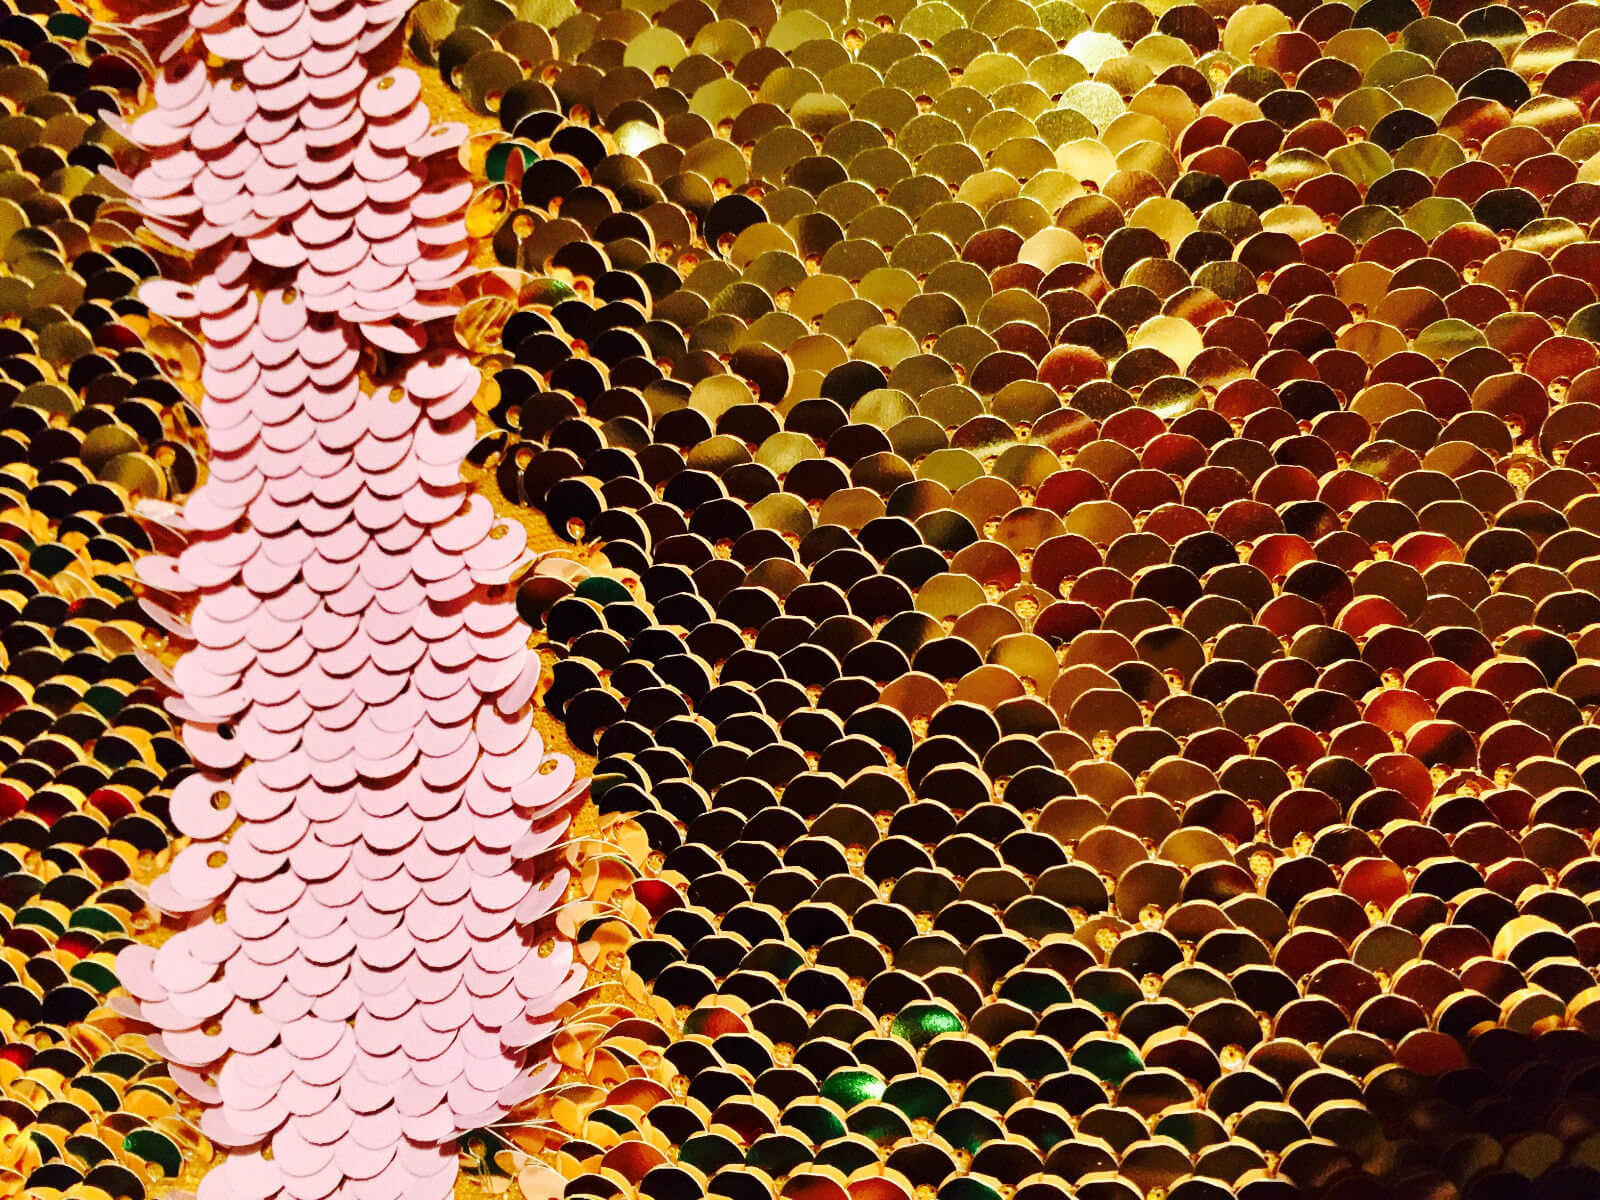 mermaid-reversible-5mm-sequin-fabric-flip-two-tone-stretch-material-130cm-wide-baby-pink-gold-sequins-5a417d5f1.jpg